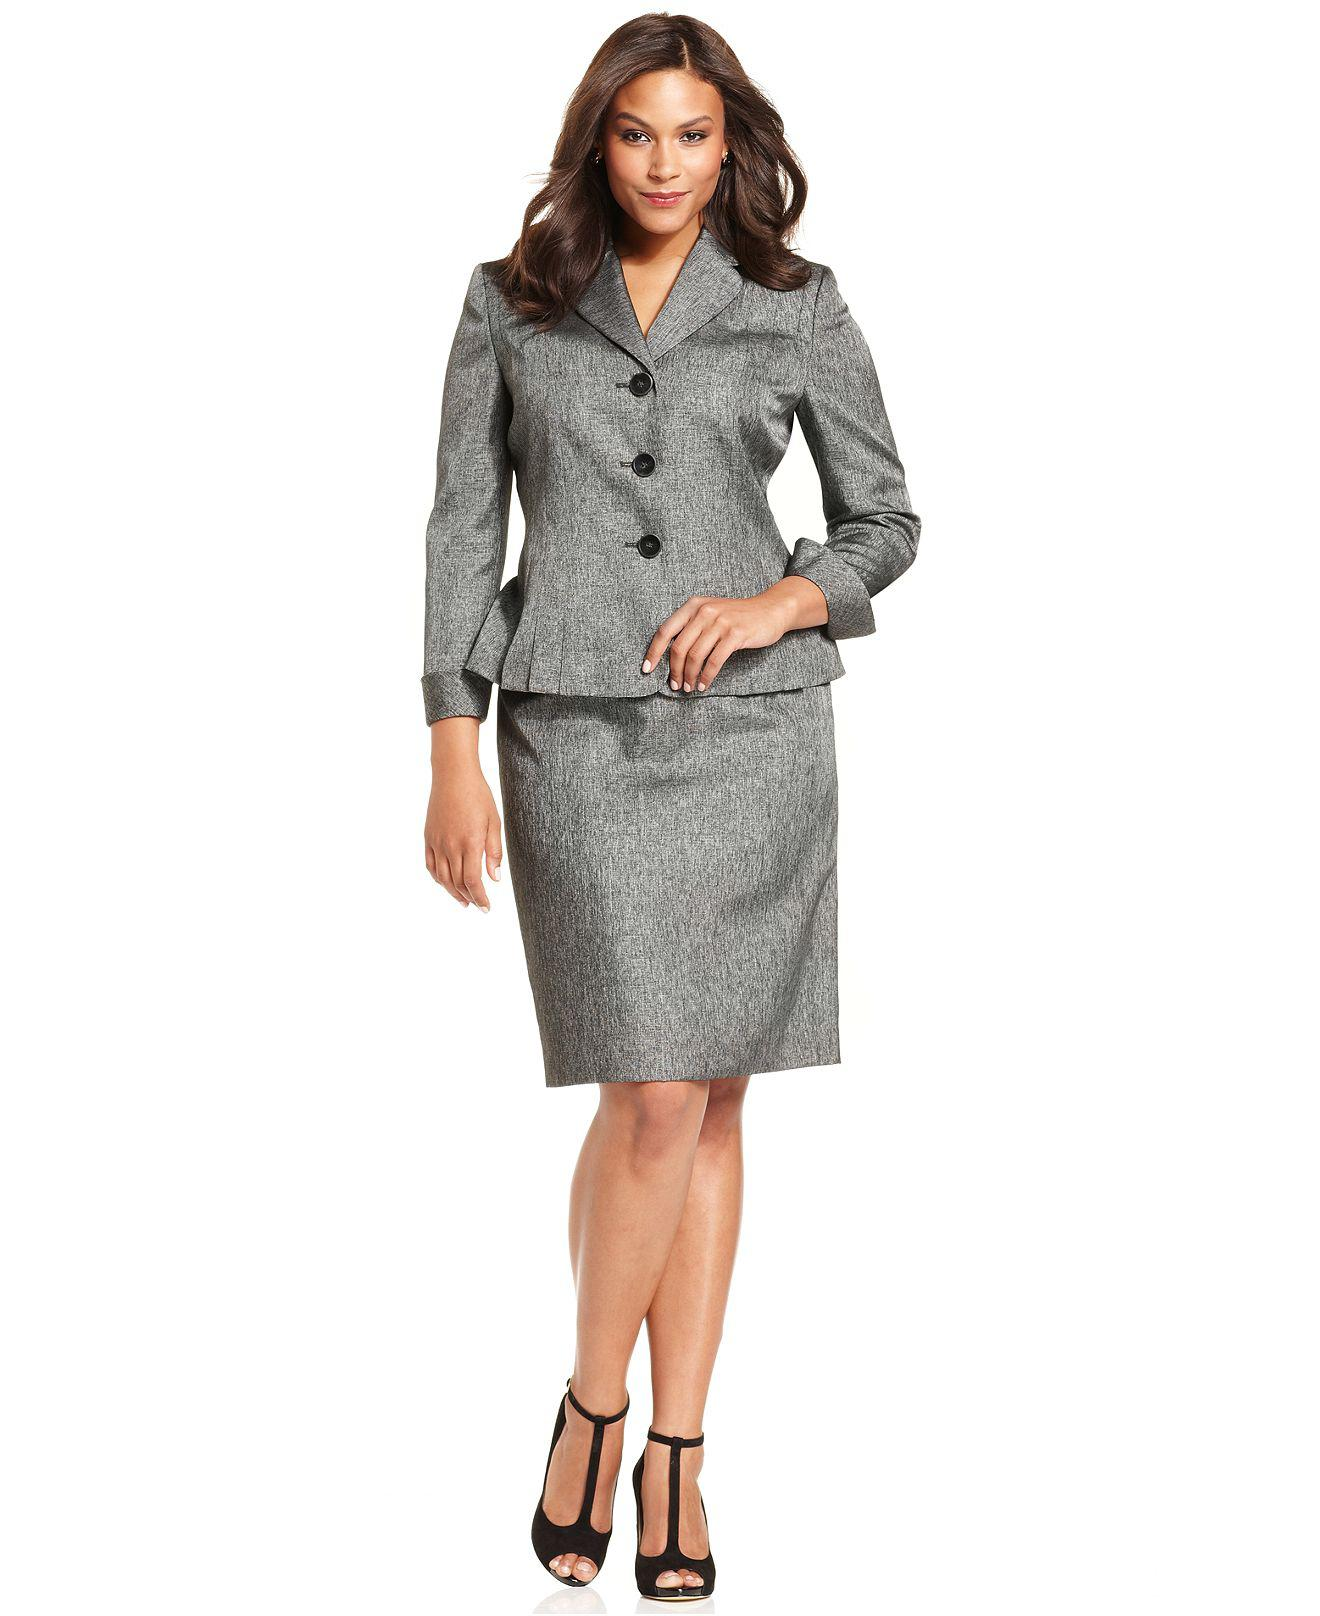 Plus Size Suit Pleated-Hem Blazer & Skirt Gray Women Suit Custom ...